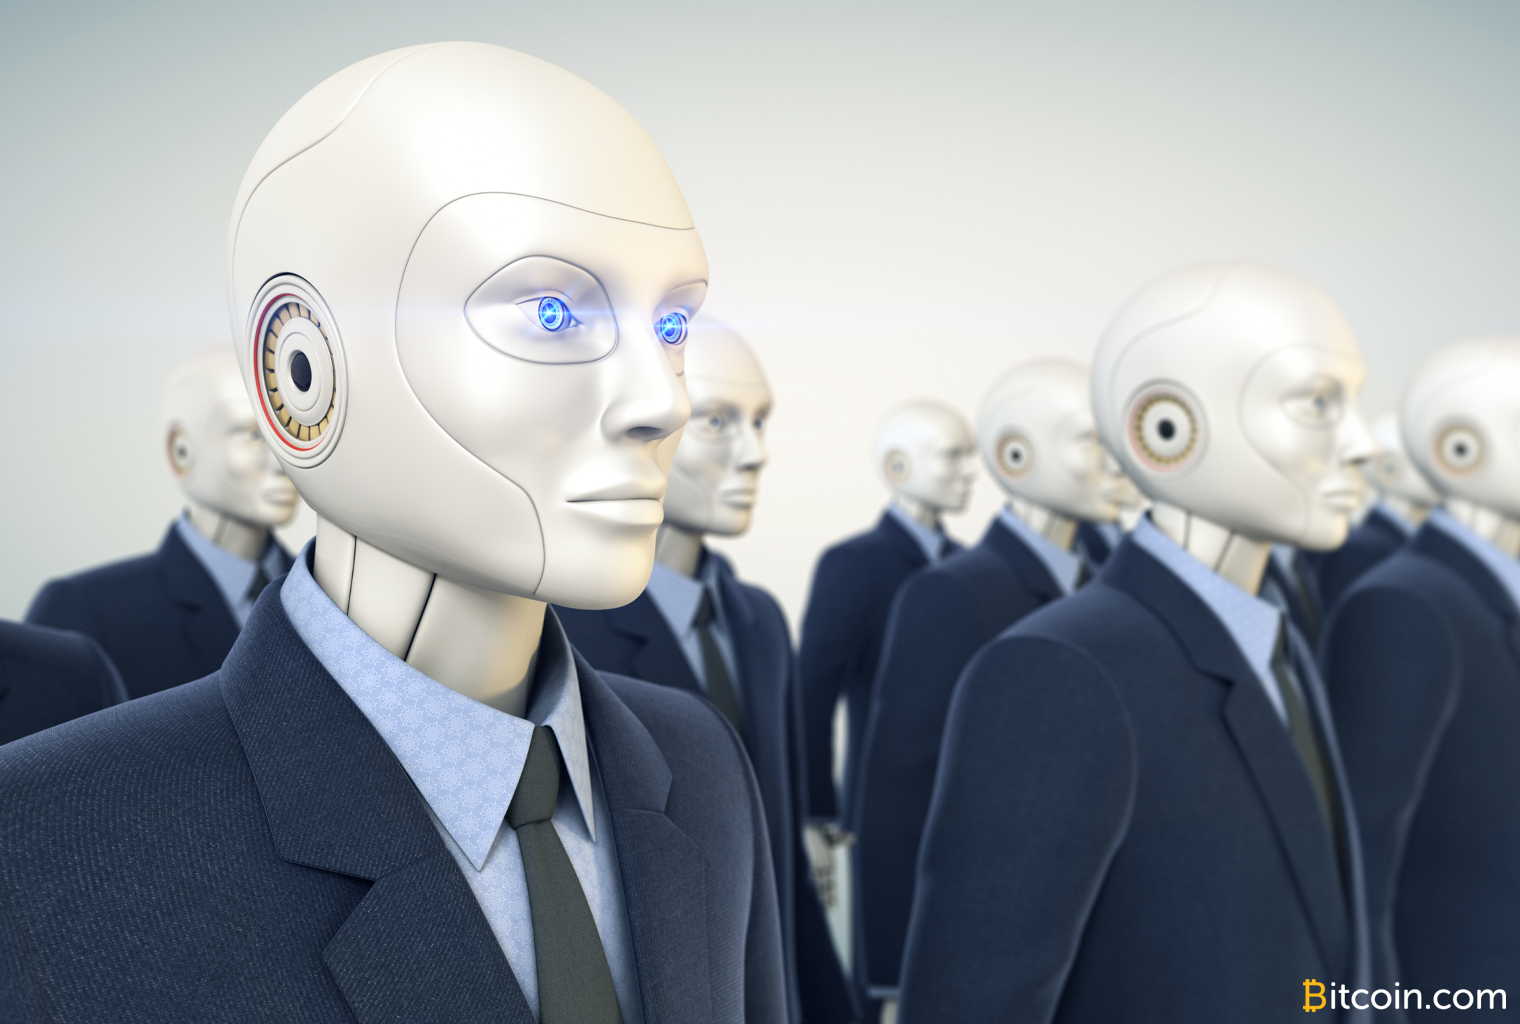 XRP Sentiment Manipulated by Thousands of Bots, Analyst Claims - Bitcoin News